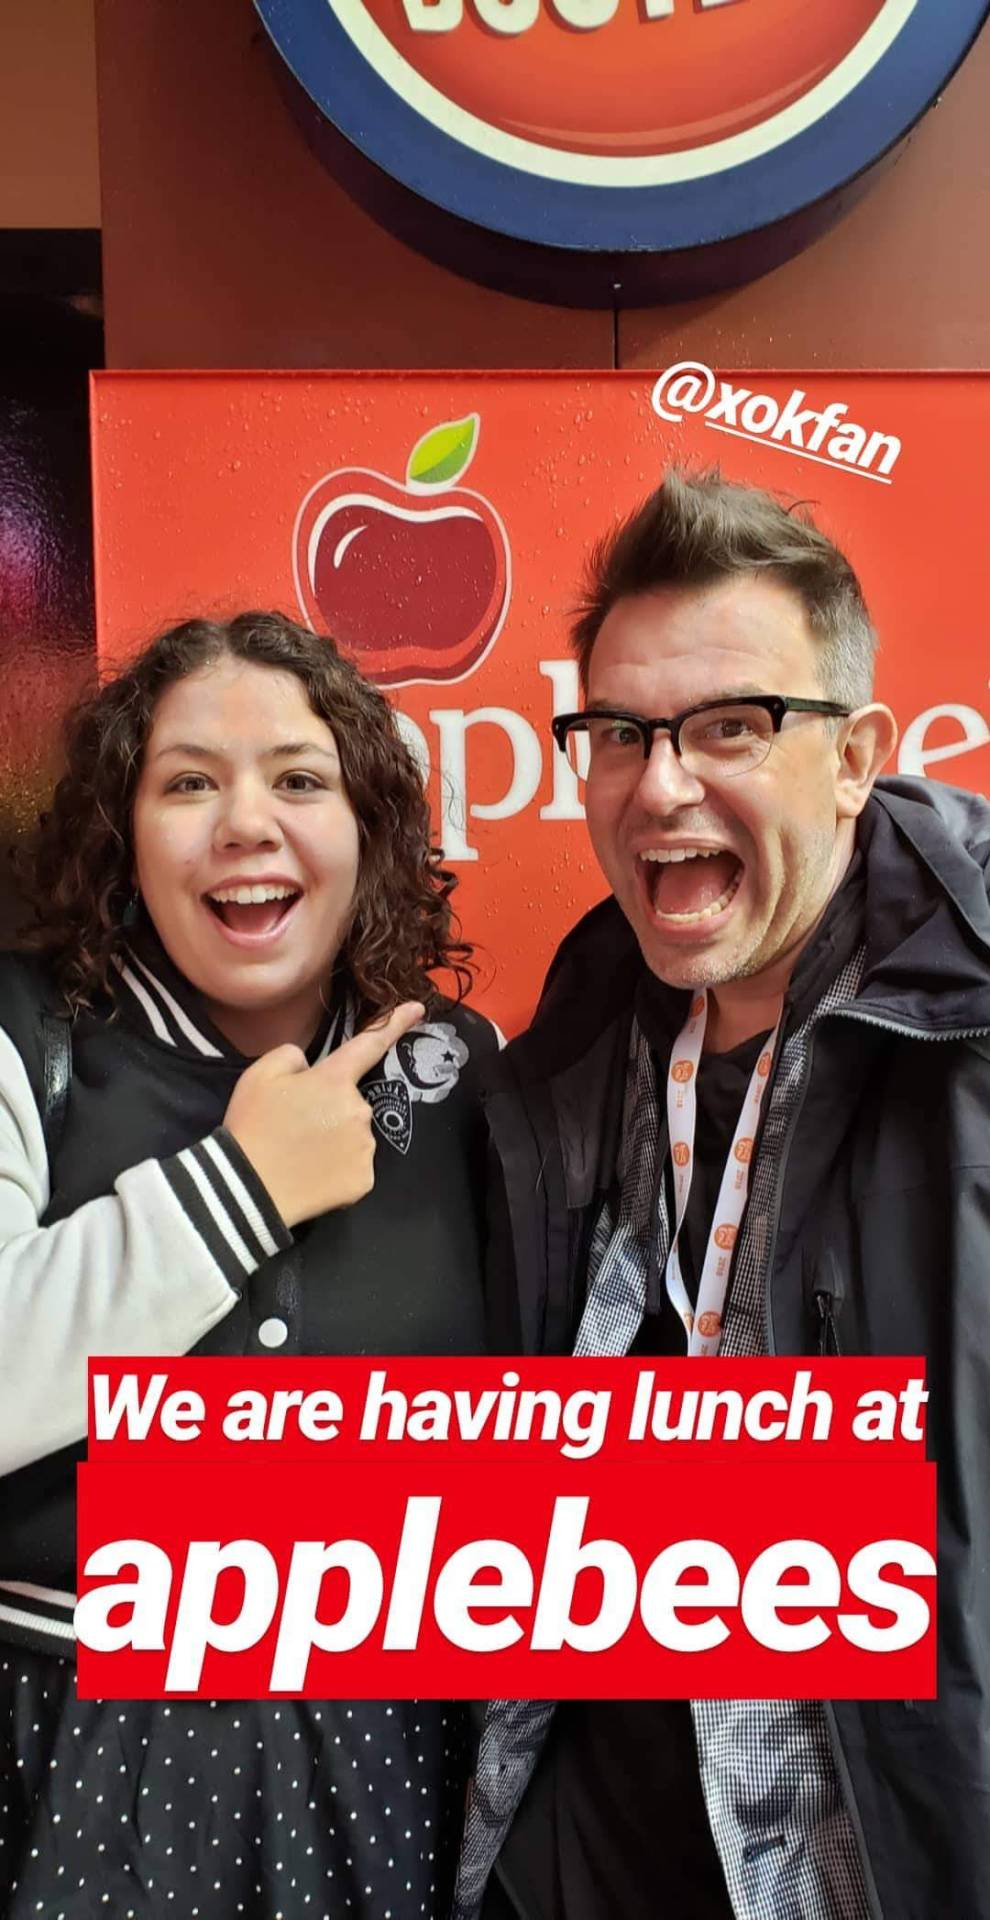 """Elizabeth and Kevin Fanning standing in front of an Applebee's with the helpful caption """"We are having lunch at applebees"""""""